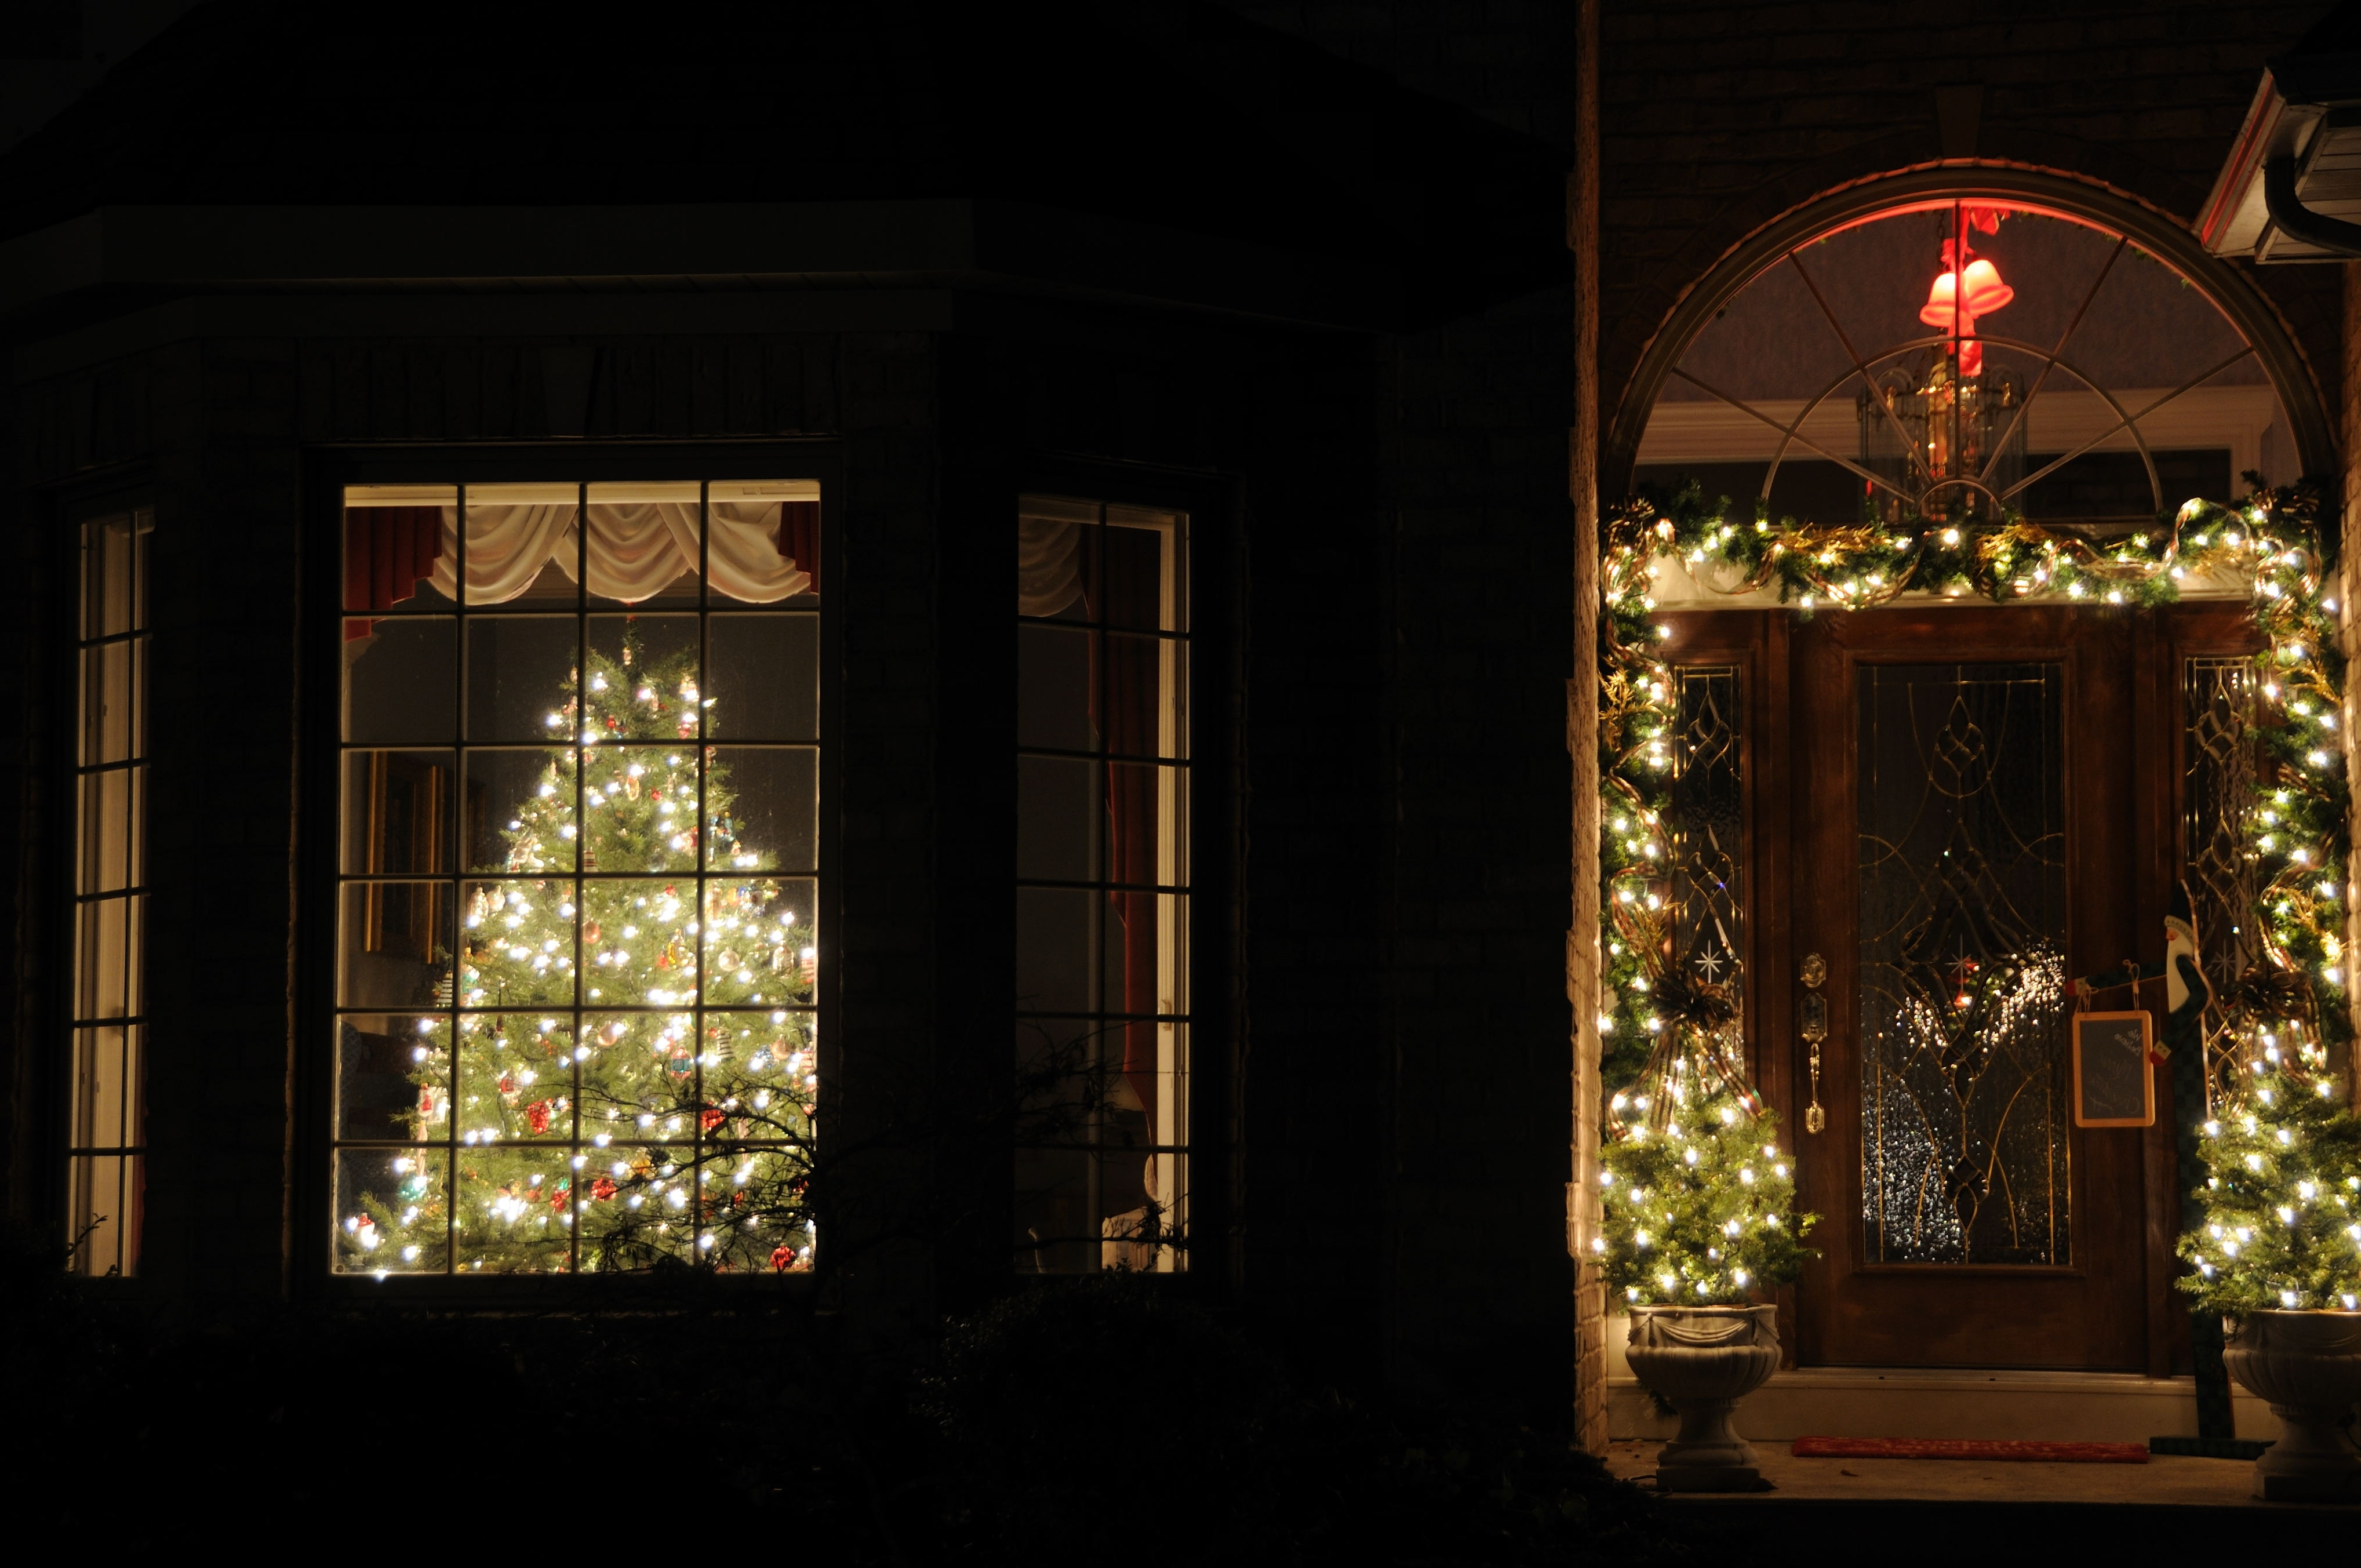 Hanging Outdoor Christmas Lights Around Windows In Current How To Hang Christmas Lights In Windows Chritsmas Decor (View 6 of 20)